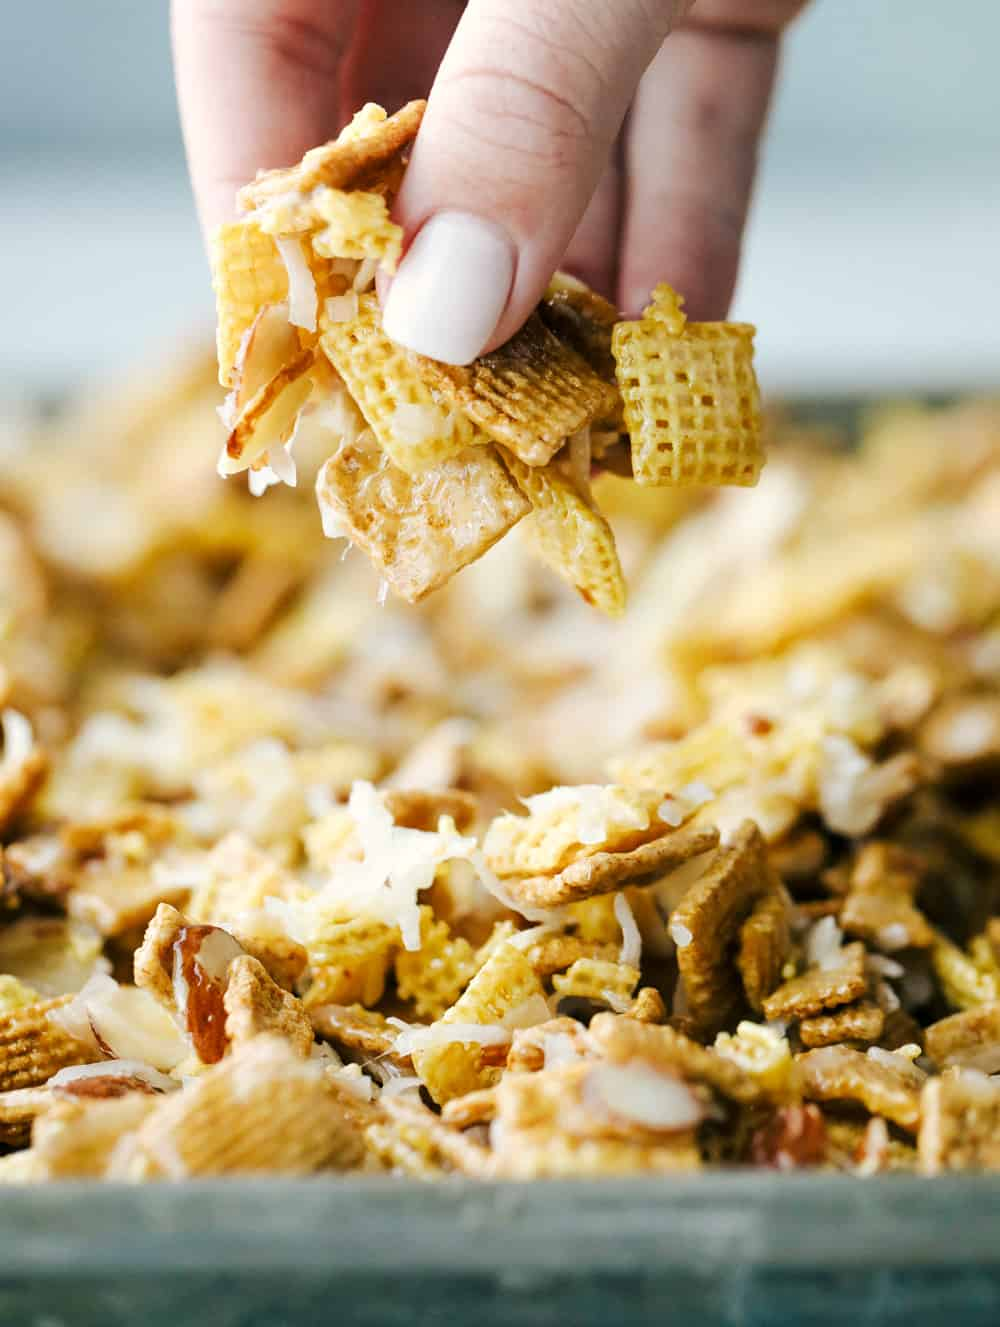 ooey gooey Chex mix on a sheet pan with Alyssa, the recipe critic showing it in her fingers.